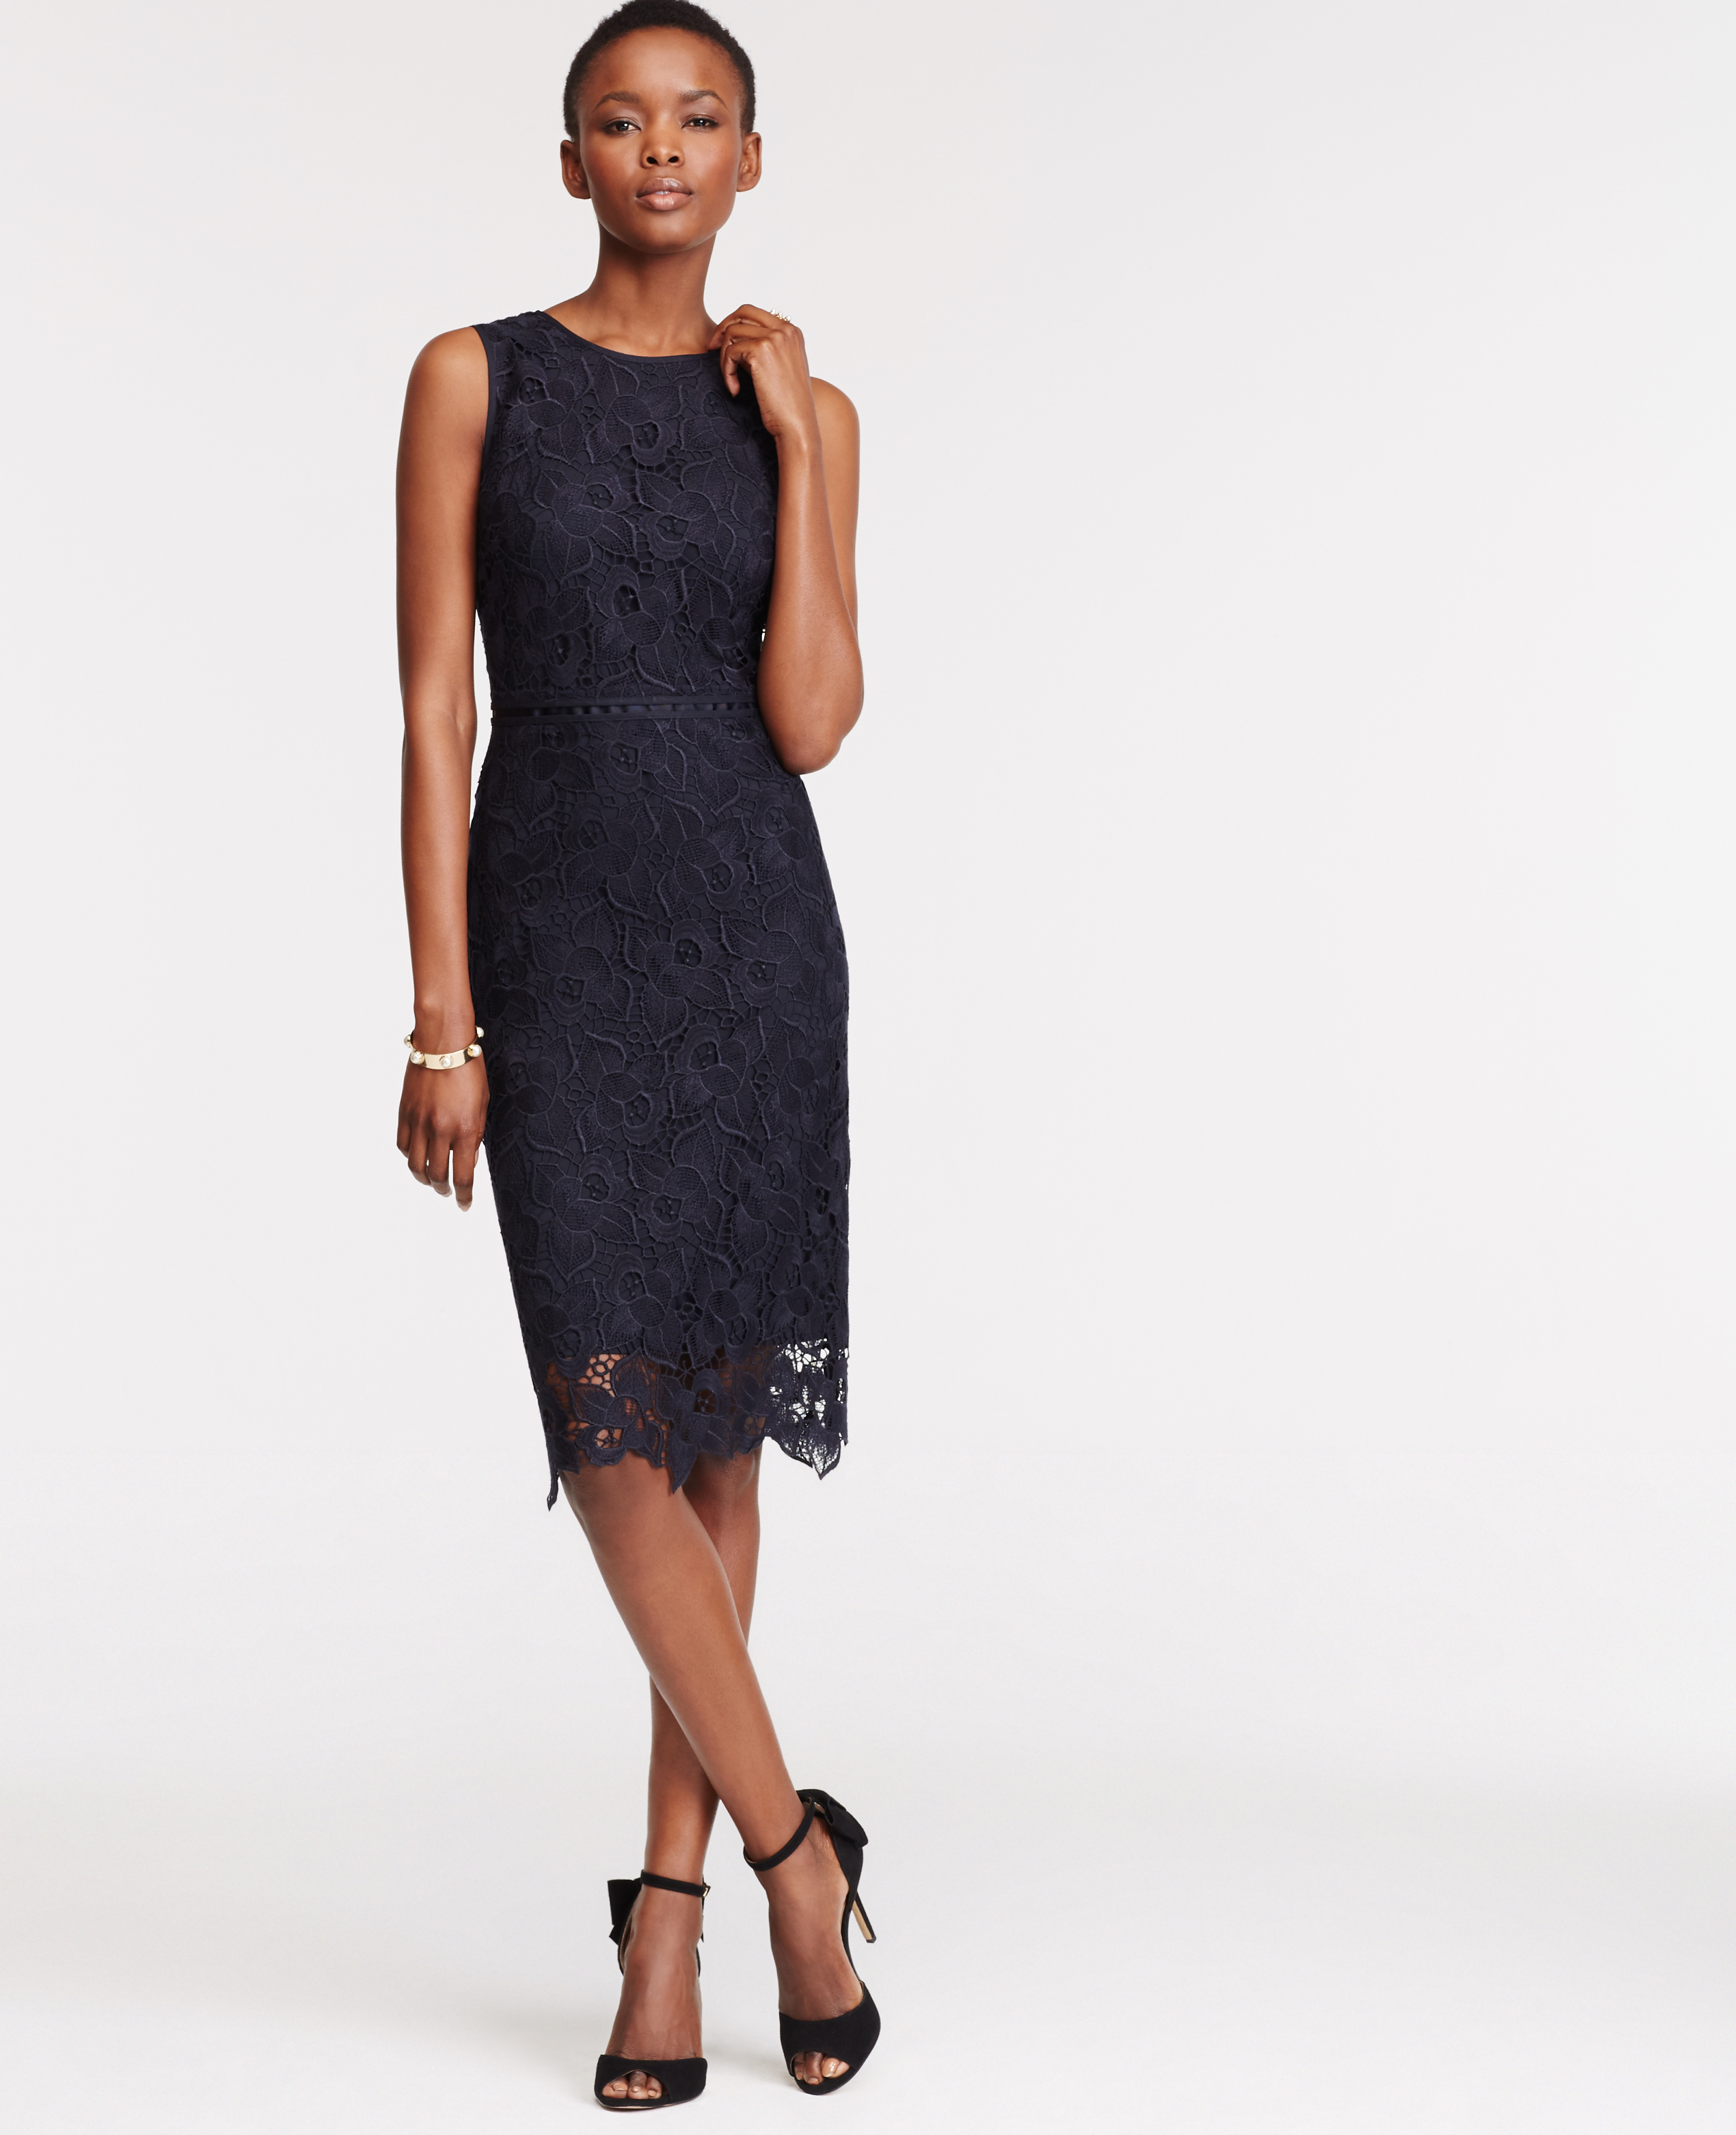 Lyst - Ann Taylor Petite Floral Lace Sheath Dress in Blue